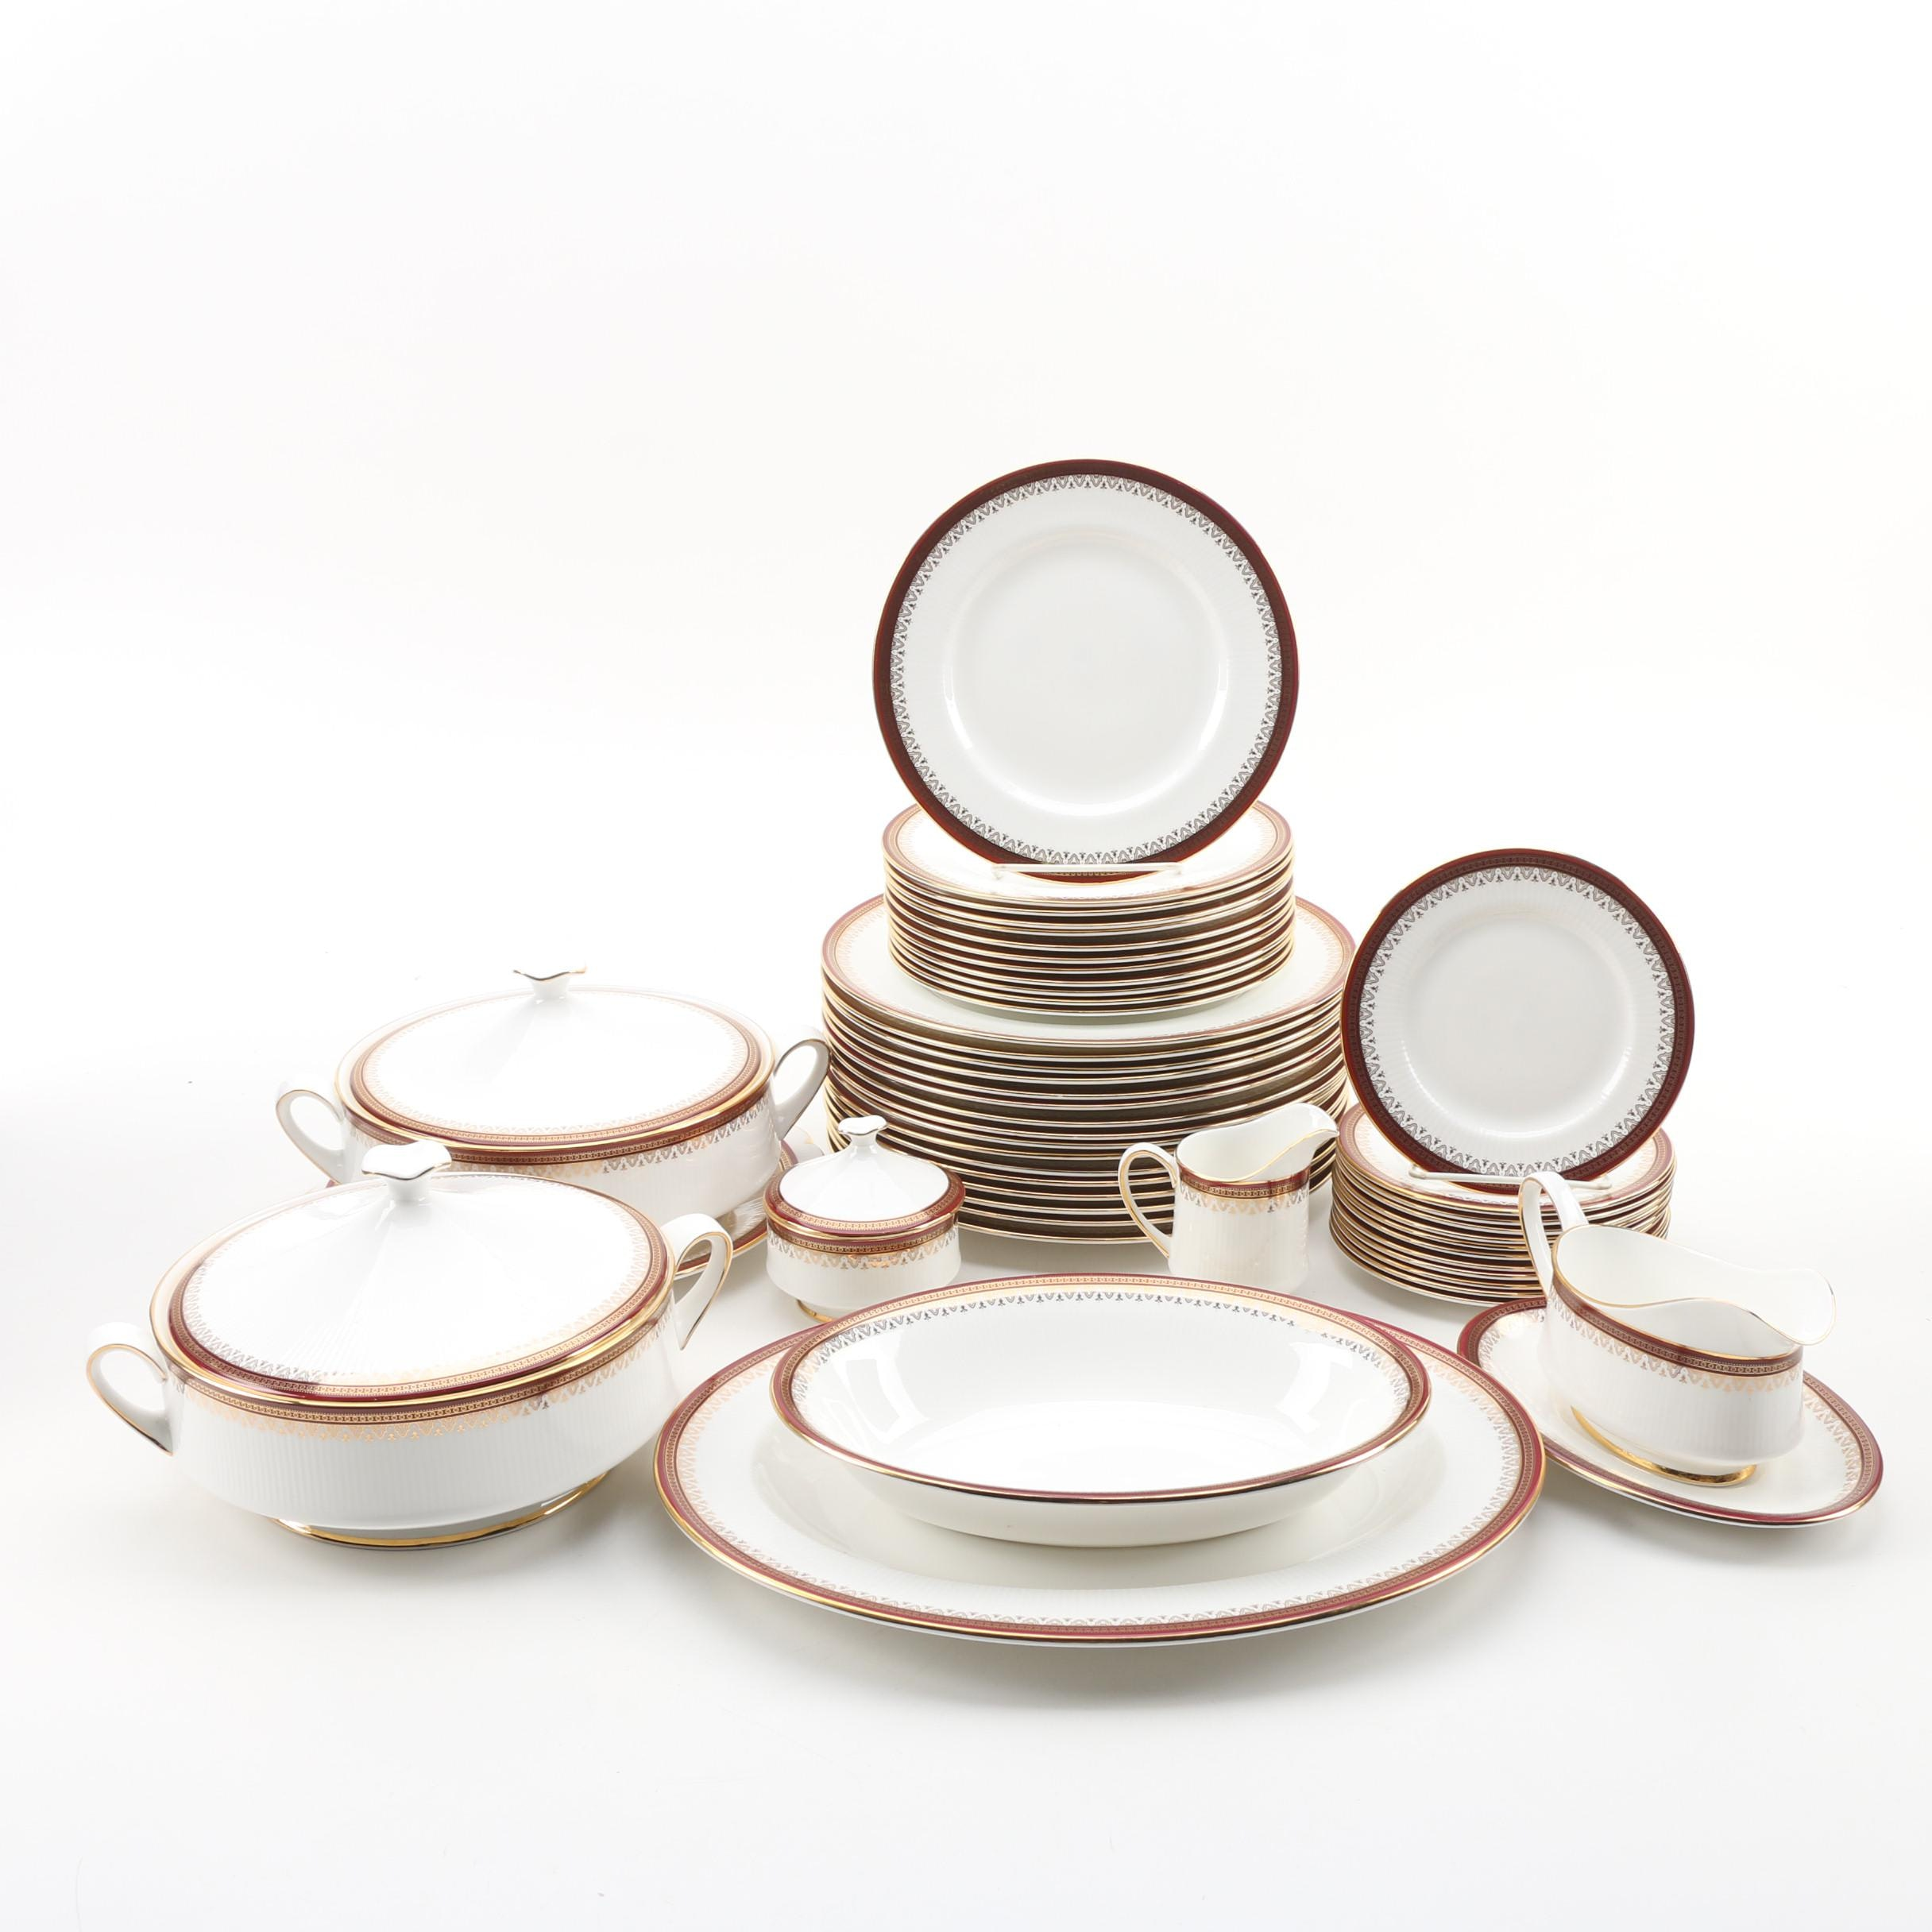 """Paragon """"Holyrood"""" Bone China Dinnerware and Serving Pieces, 1987-1990"""